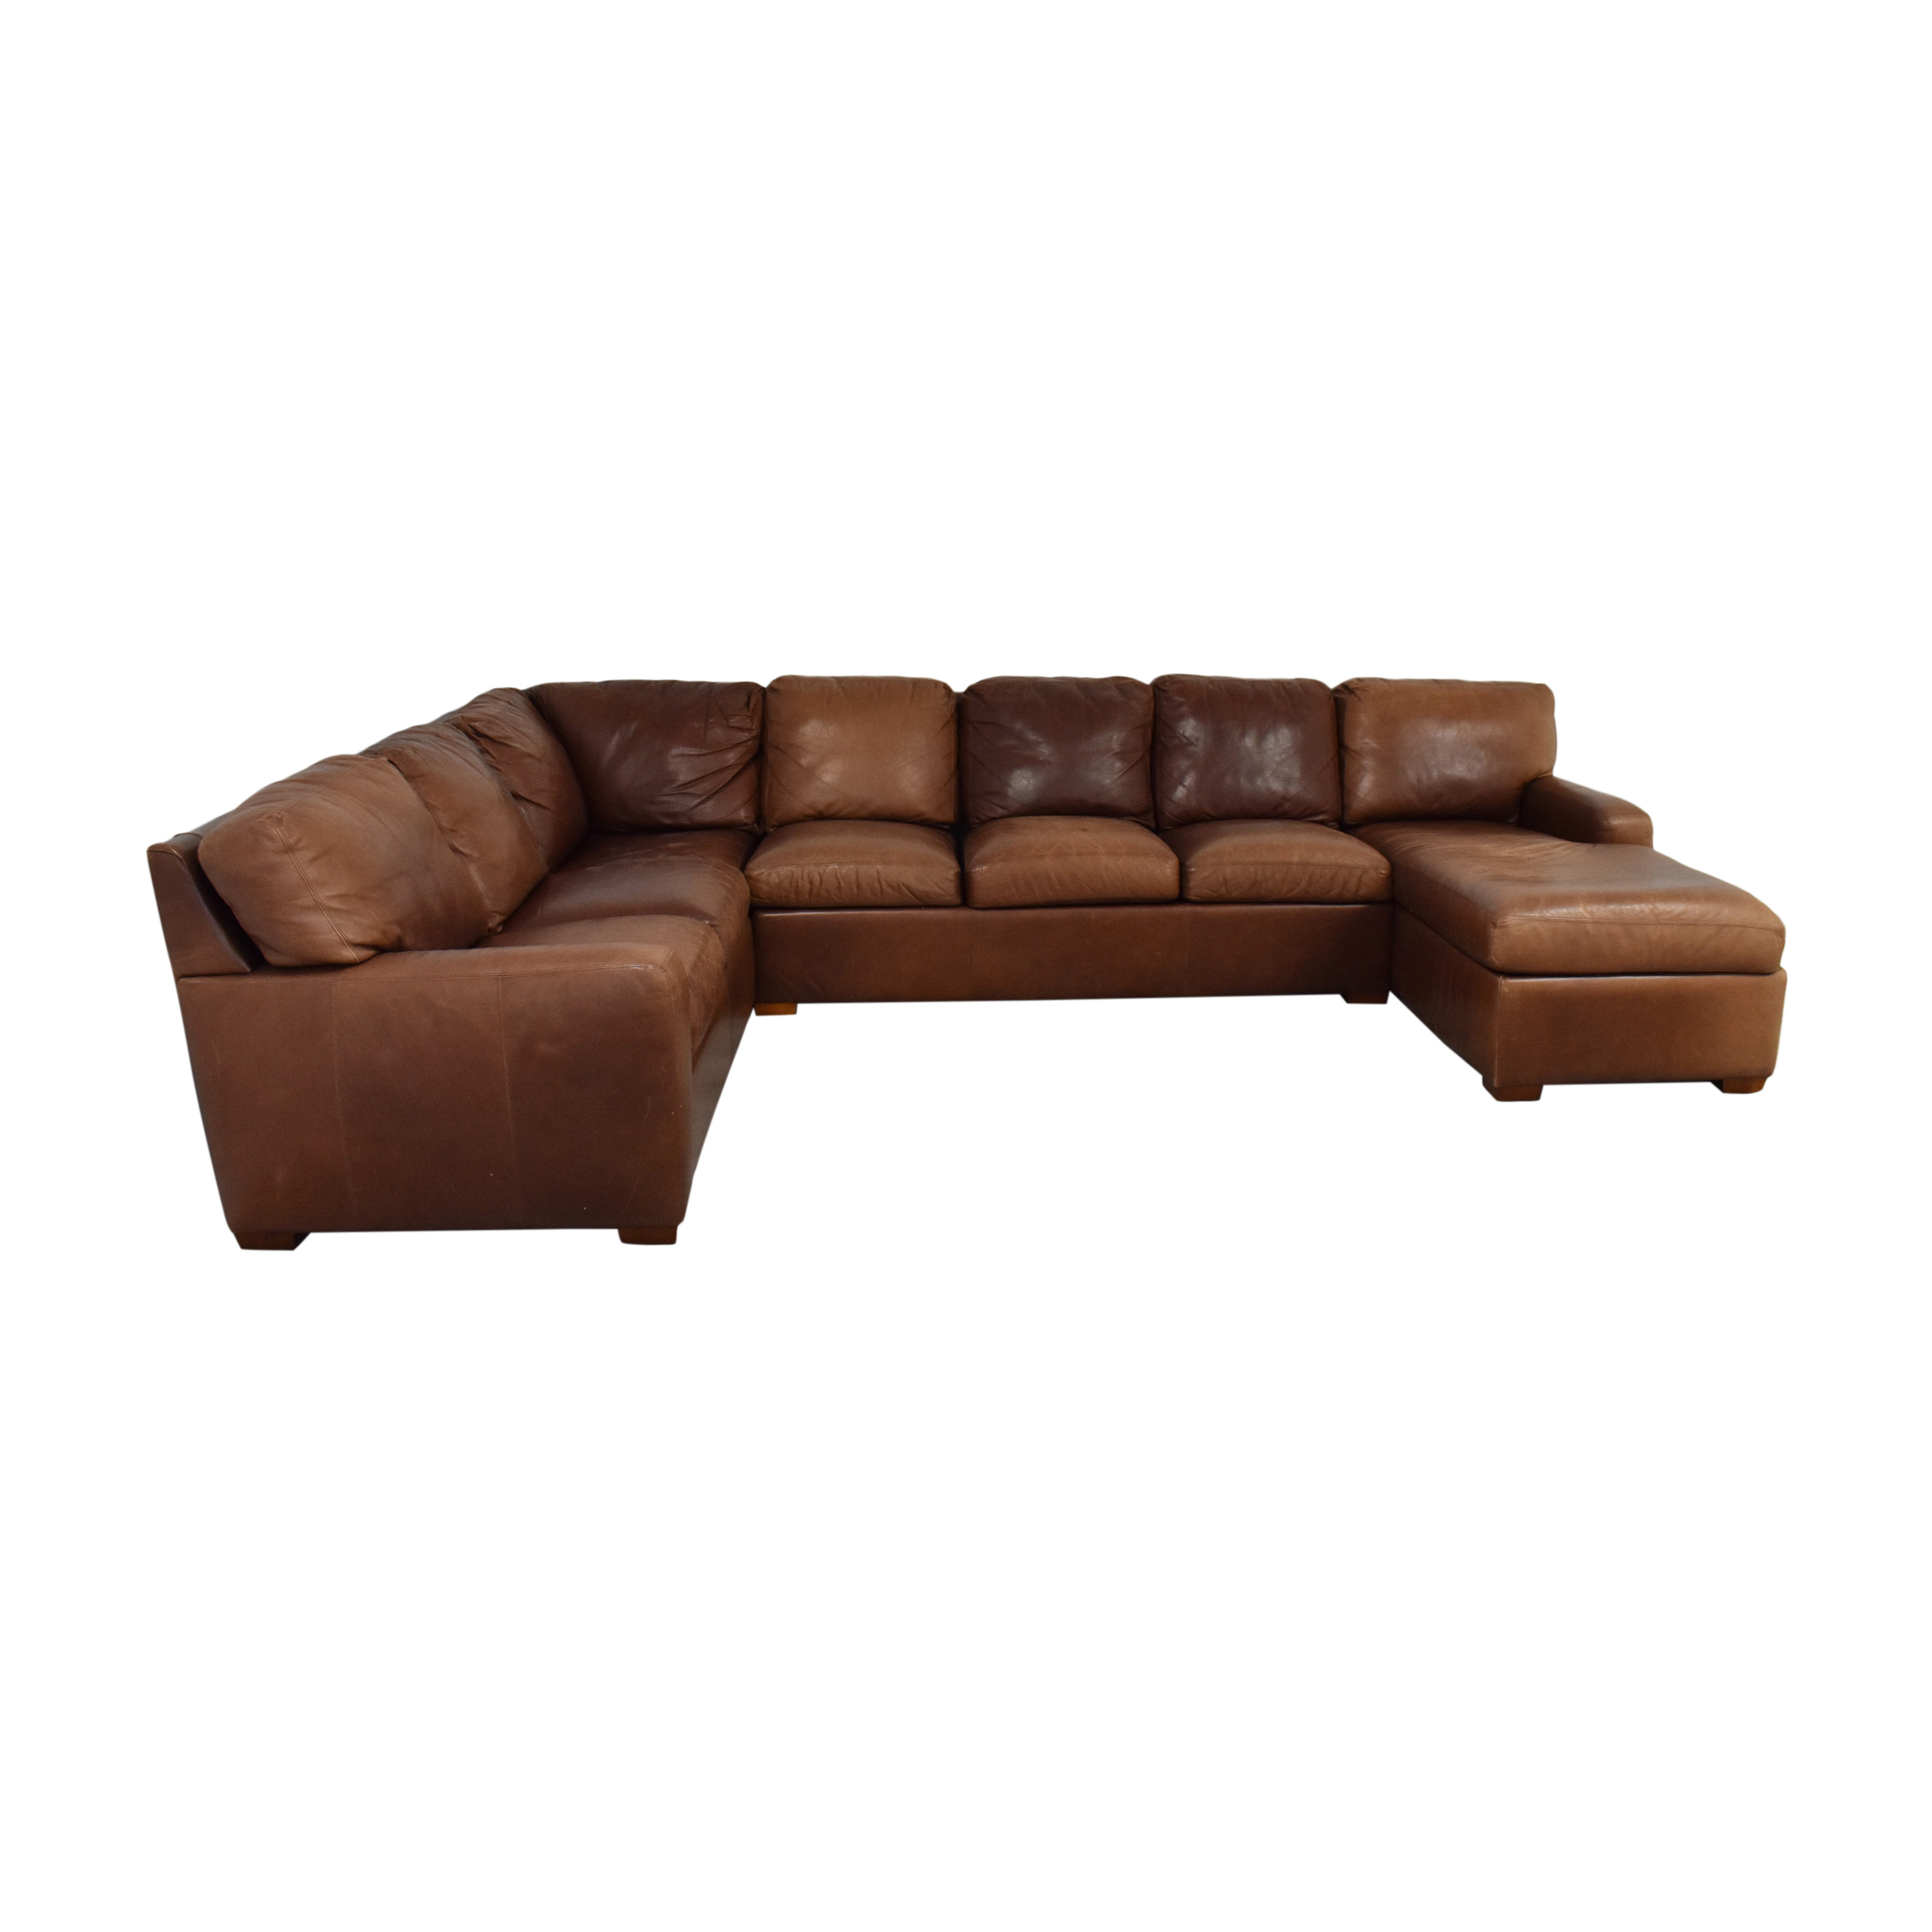 shop American Leather American Leather Danford Sectional Sofa online